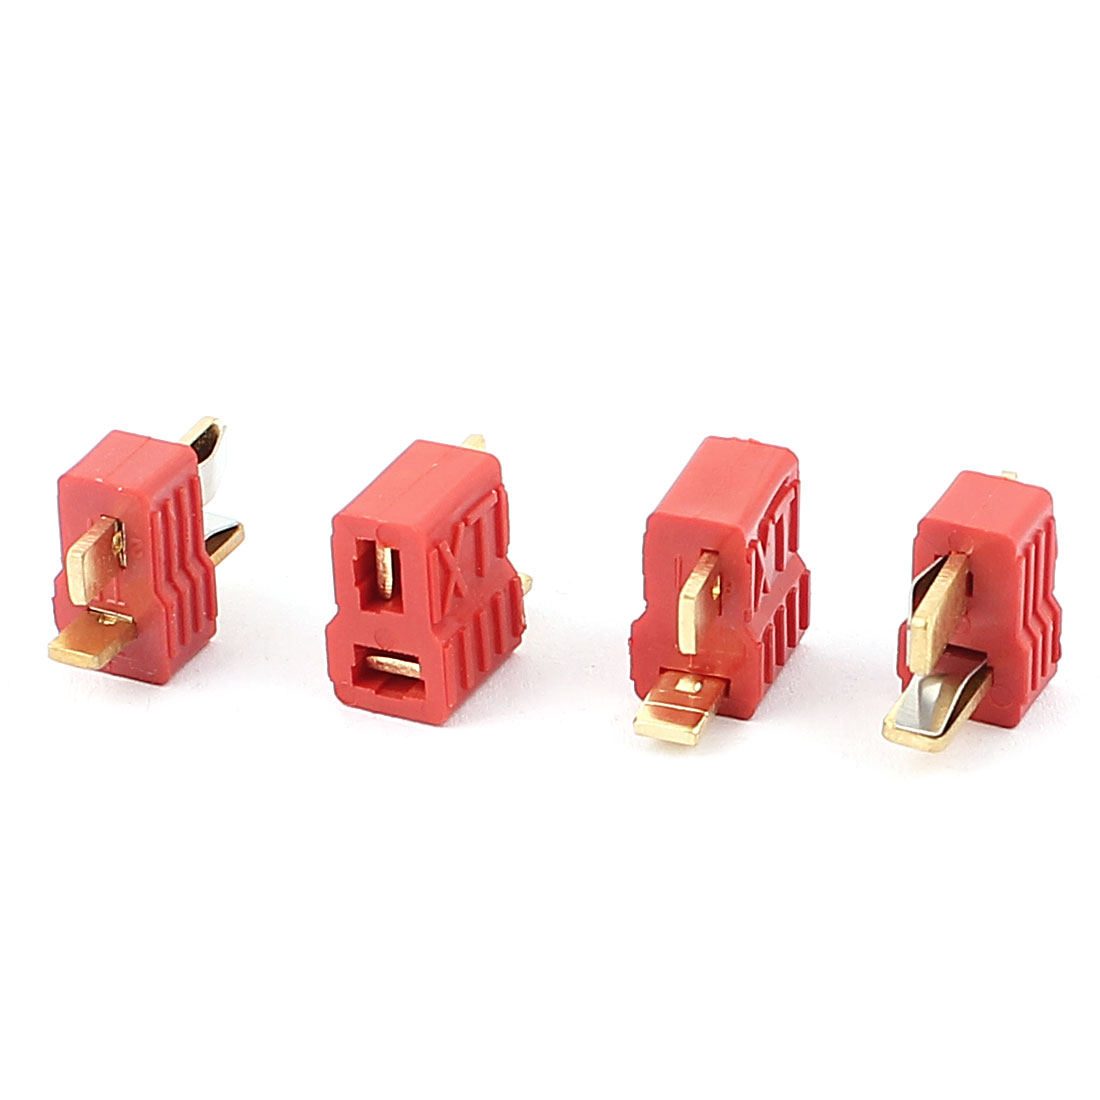 2 Pairs Red Gold Tone T Plug Male to Female Connector for RC Model Toy